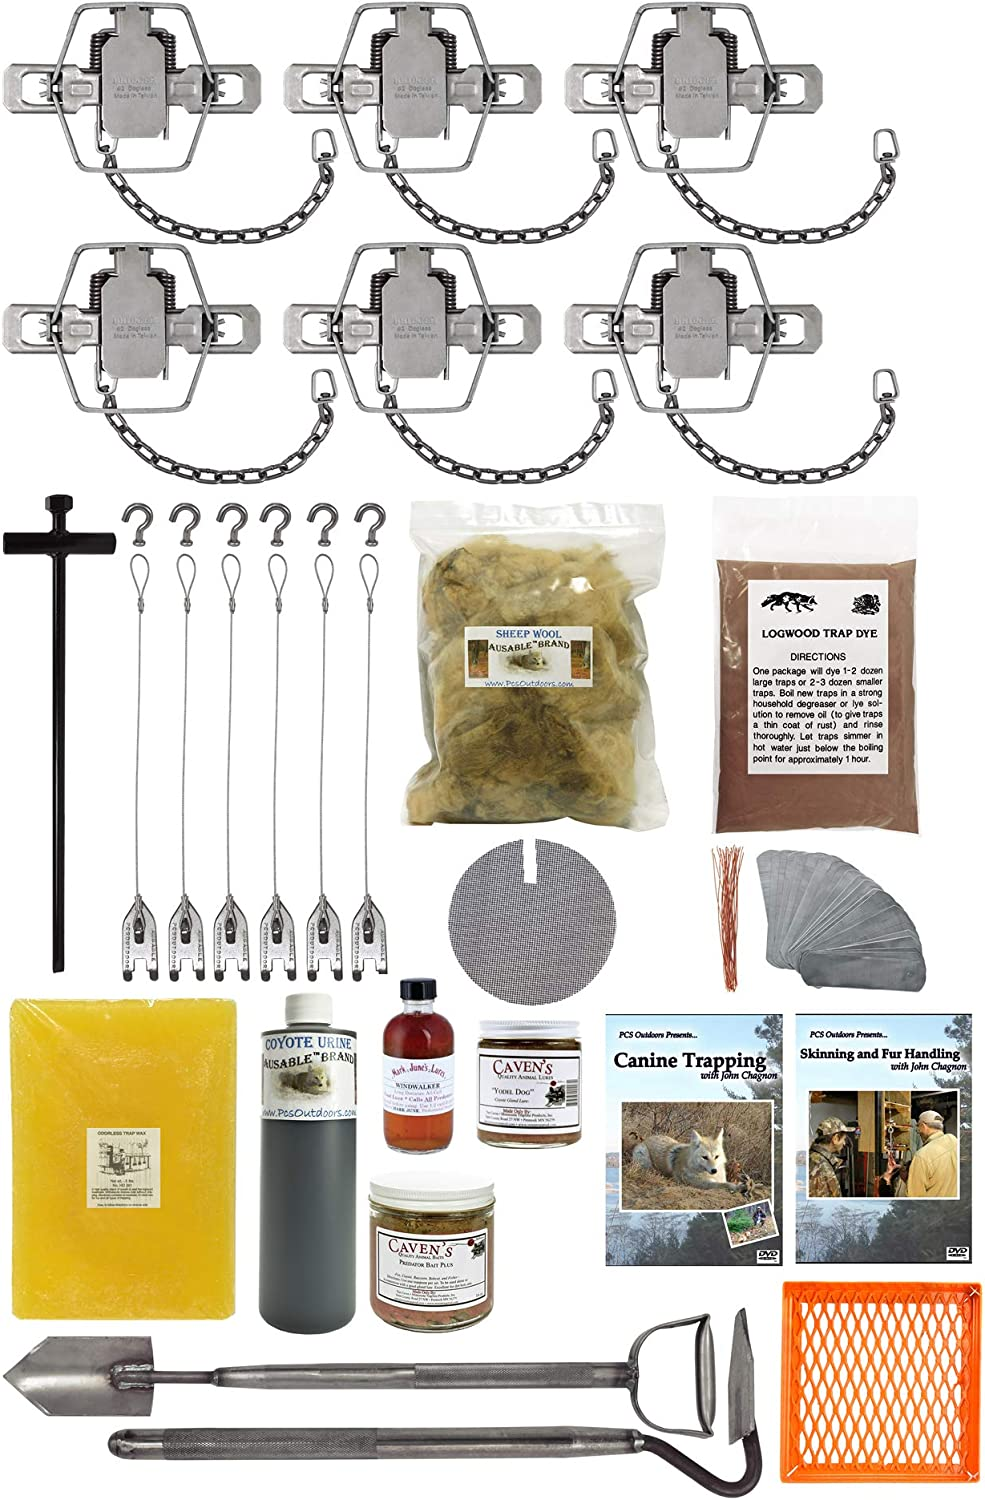 PcsOutdoors Standard Coyote Trapping Starter Kit USA Made Kit 20 Pieces